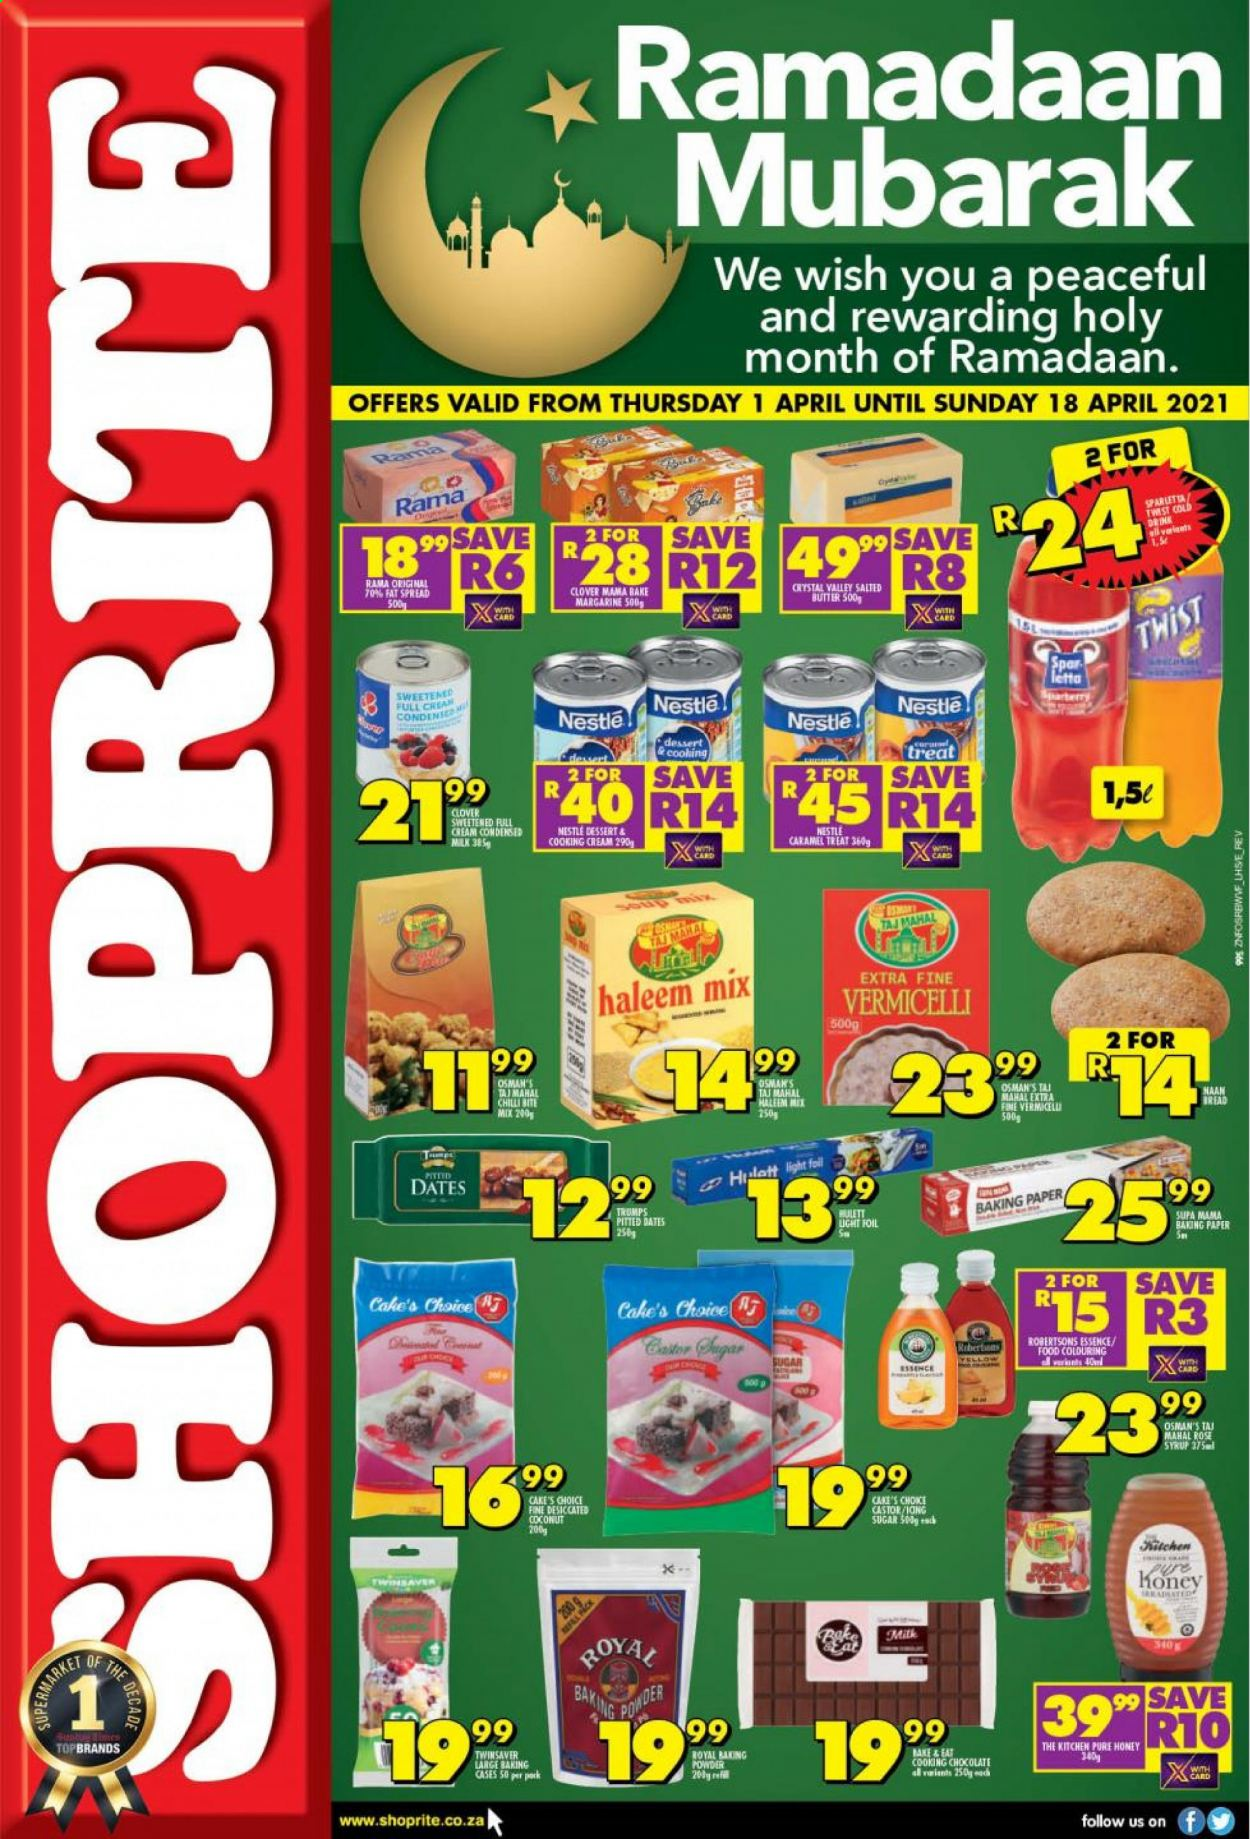 Shoprite catalogue  - 04.01.2021 - 04.18.2021 - Sales products - cake, coconut, Clover, milk, margarine, fat spread, Rama, Nestlé, baking powder, sugar, caramel, honey, syrup, fard dates, Spar letta, baking paper. Page 1.